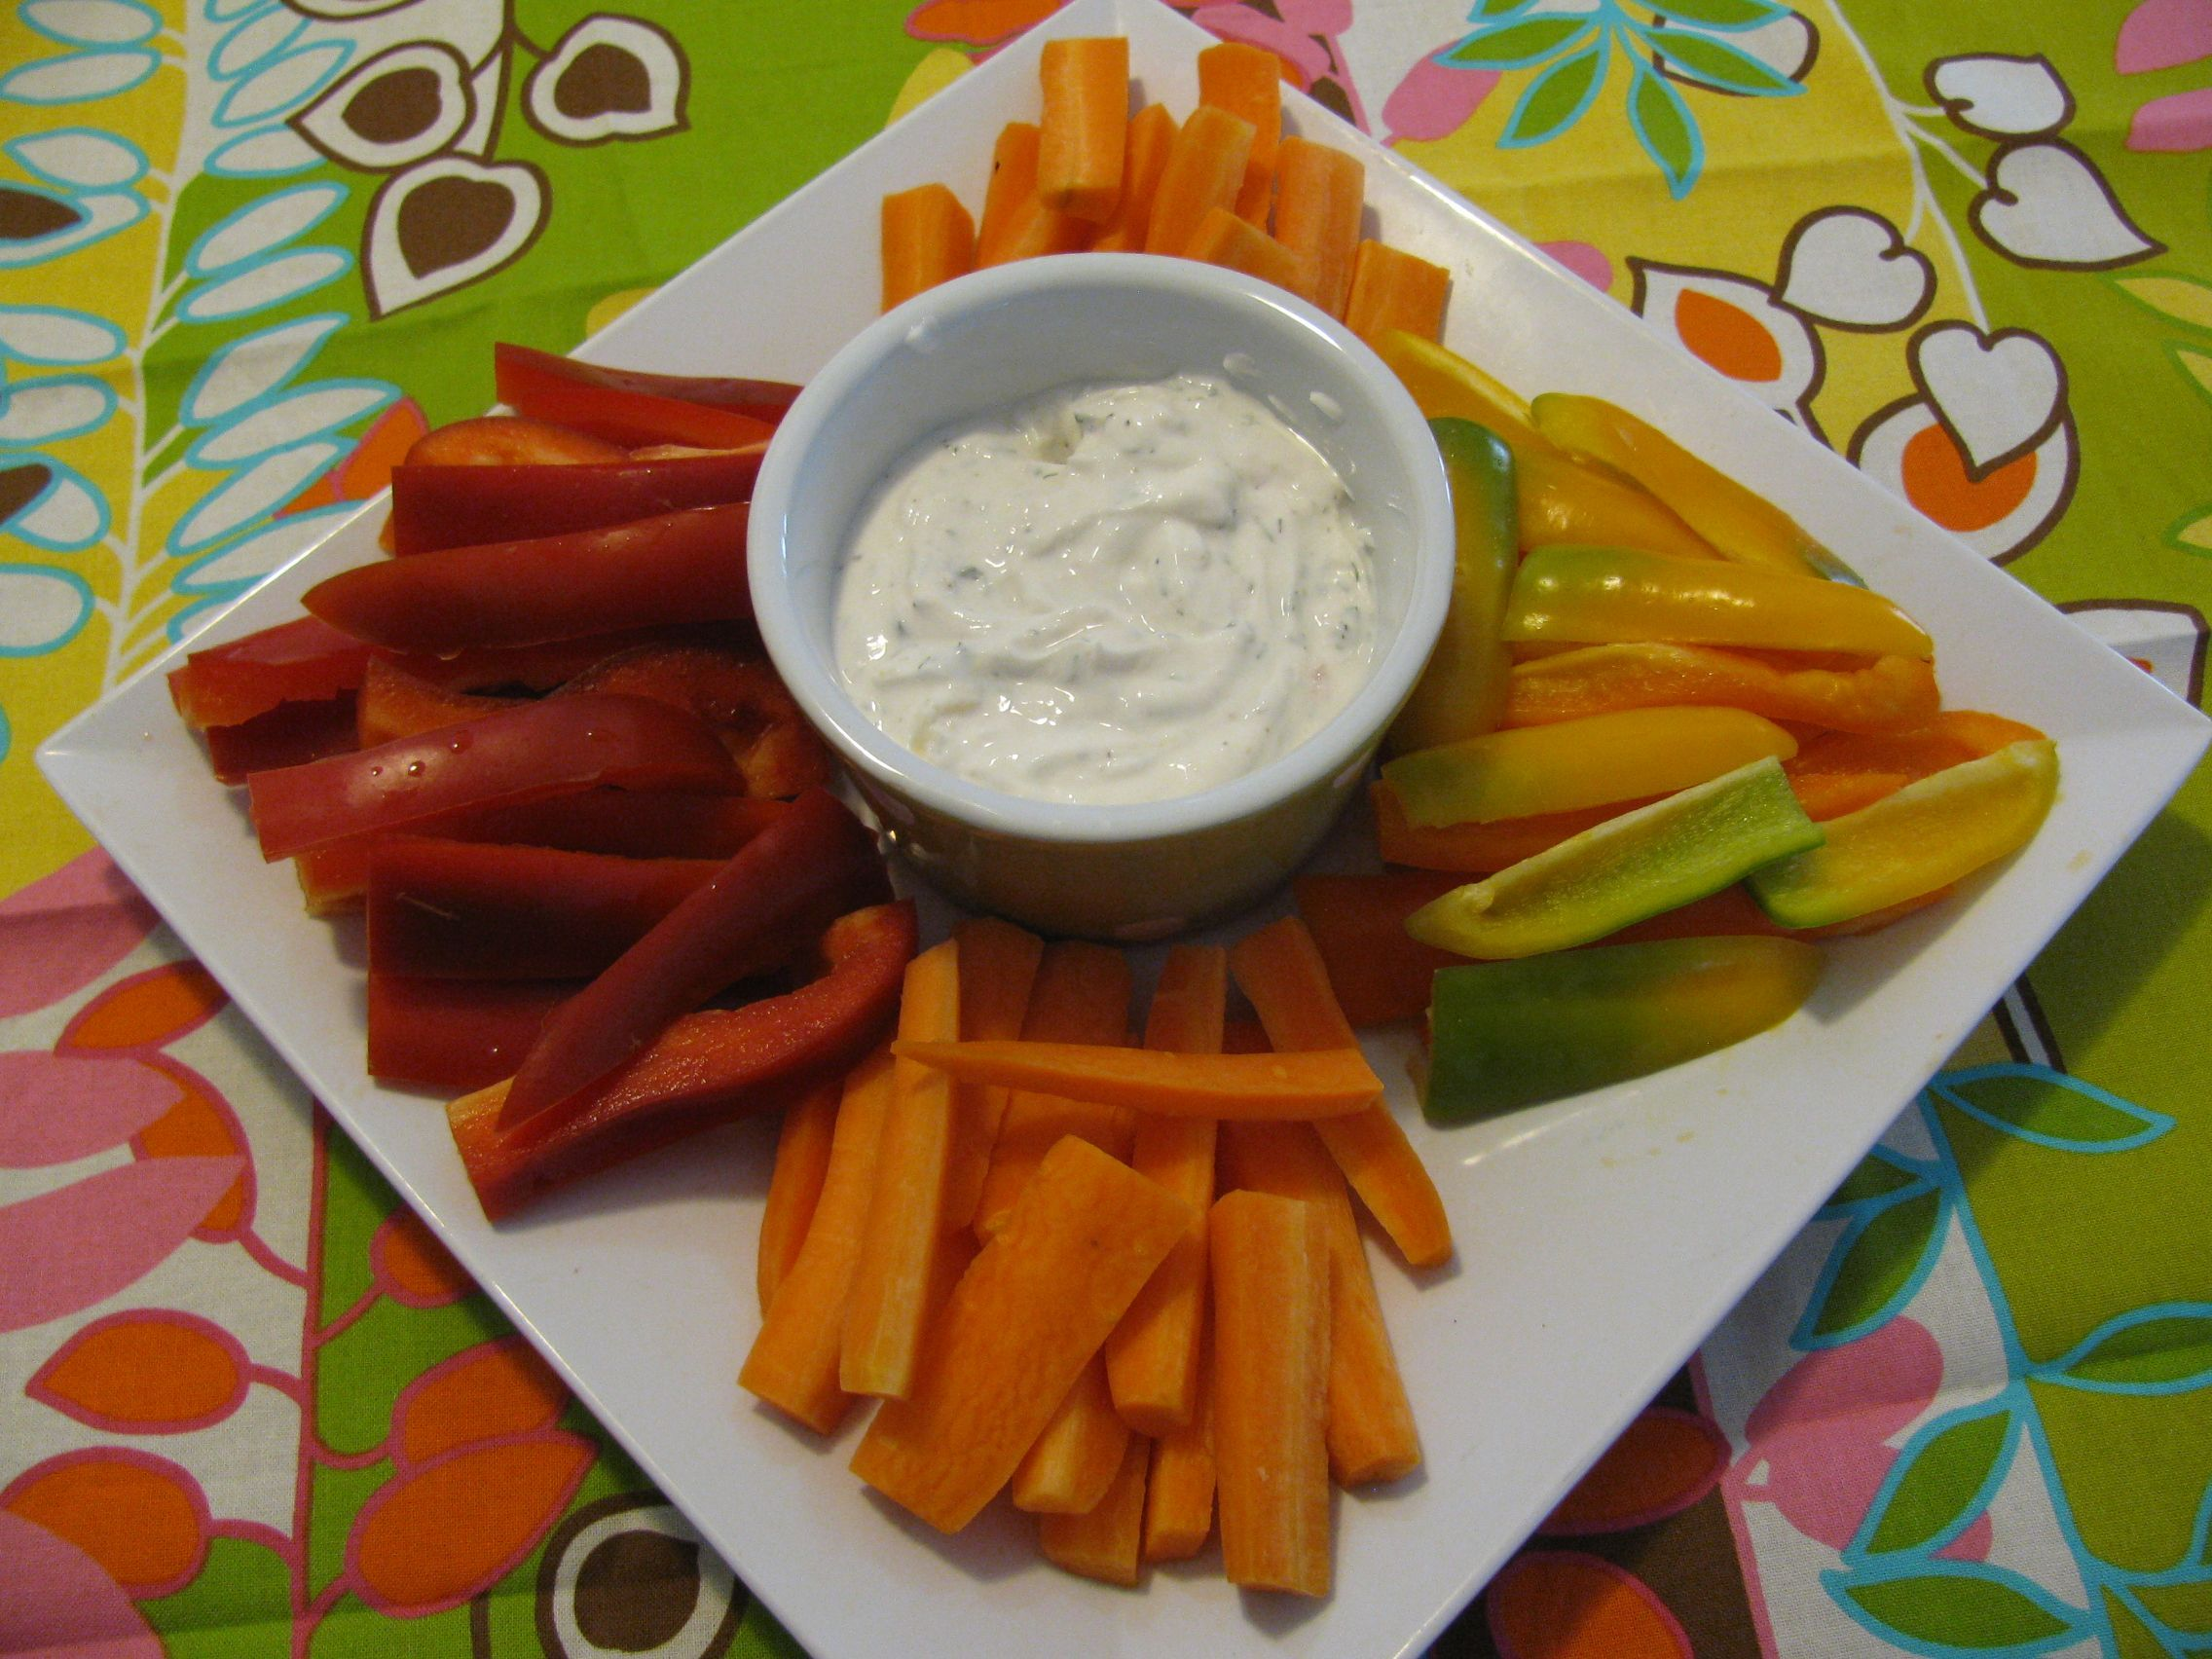 5 Minute Homemade SKINNY Avocado Ranch Dip made with Greek Yogurt. A ¼ cup of the store bought Ranch has 170 calories, 15 grams of fat and only 1 gram of protein plus tons of preservatives and chemicals. A ¼ cup of THIS dressing has 62 calories, 2.5 grams of fat and 6 grams of protein! PLUS IT BOOSTS METABOLISM!! #LoseWeightByEating #avocadoranch 5 Minute Homemade SKINNY Avocado Ranch Dip made with Greek Yogurt. A ¼ cup of the store bought Ranch has 170 calories, 15 grams of fat and only 1 gr #avocadoranch